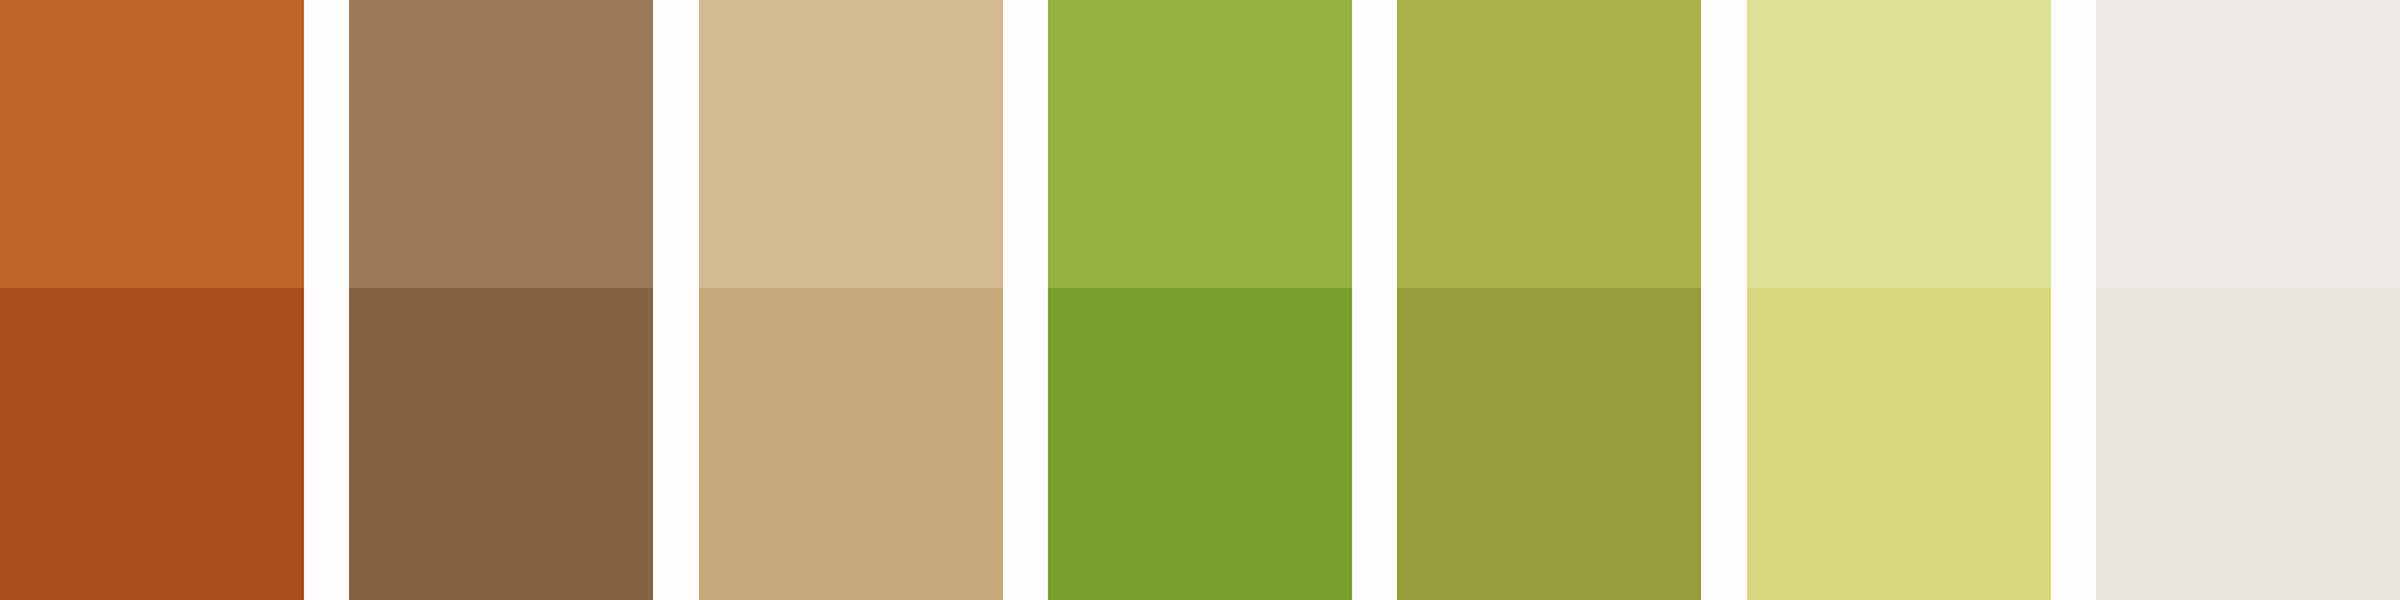 woodlandia color swatch